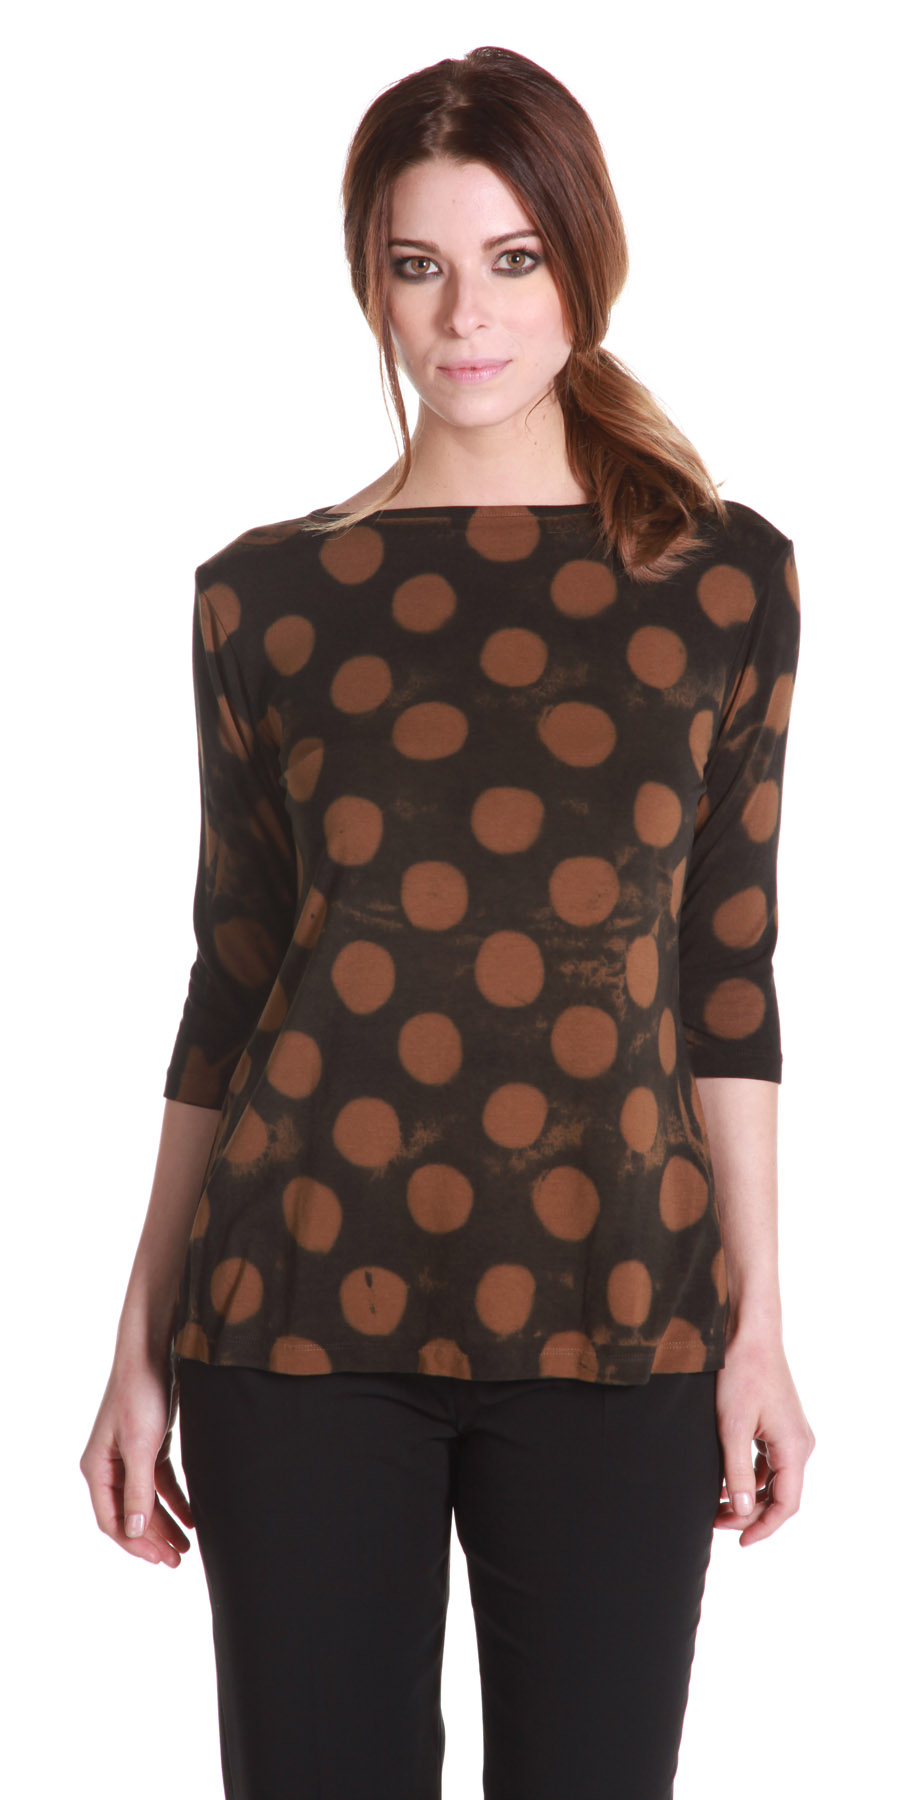 RELAXED BOAT NECK 3_4 SLEEVE – CHOCOLATE POLKA DOT